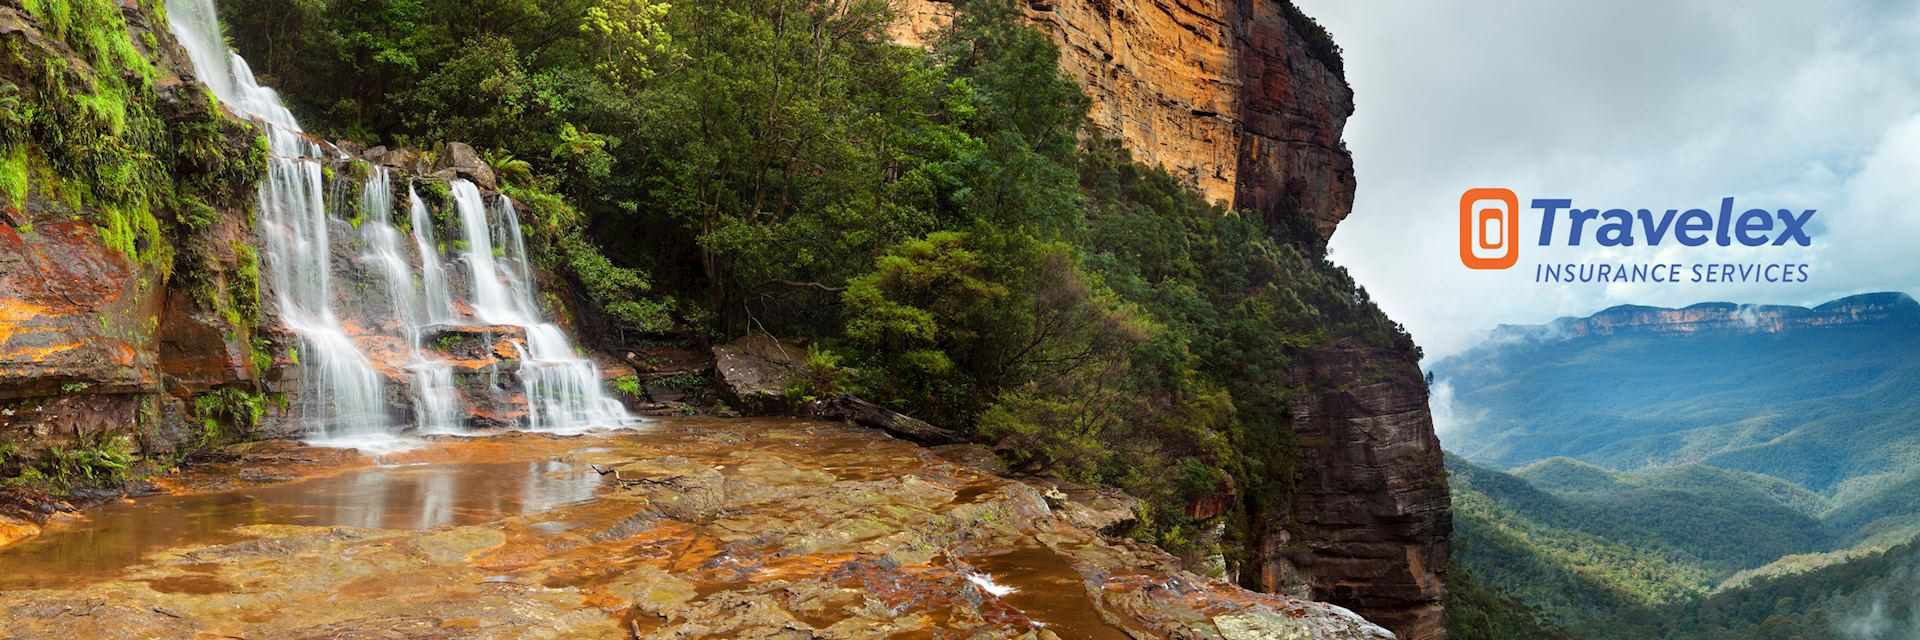 Katoomba Falls in the Blue Mountains, New South Wales, Australia